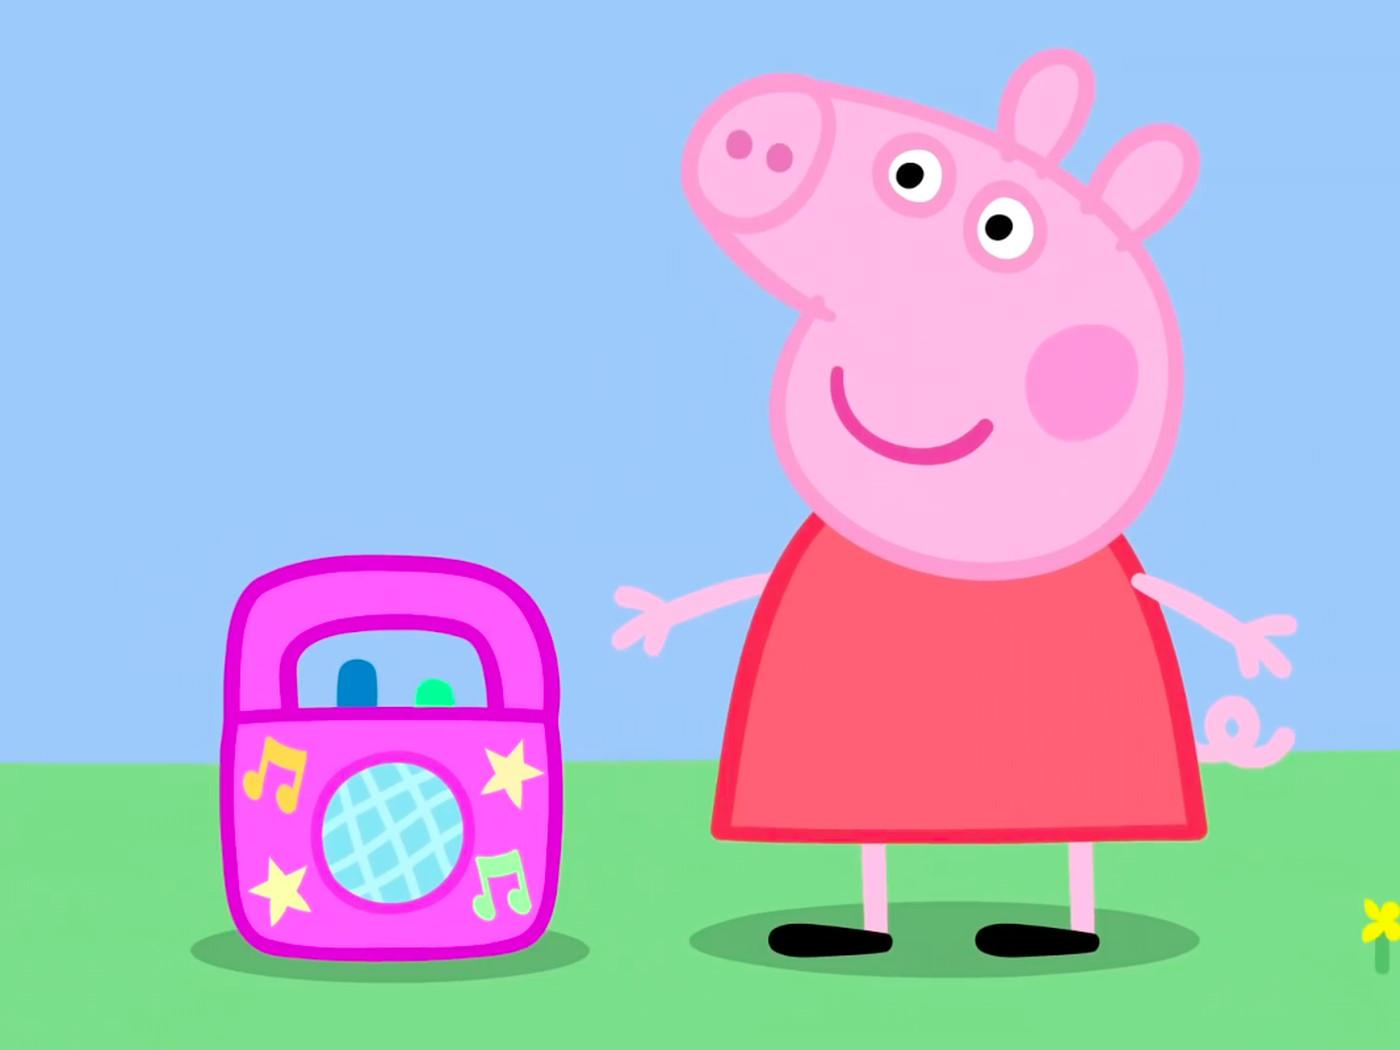 Peppa Pig is stan Twitter's newest pop star, meme, and gay